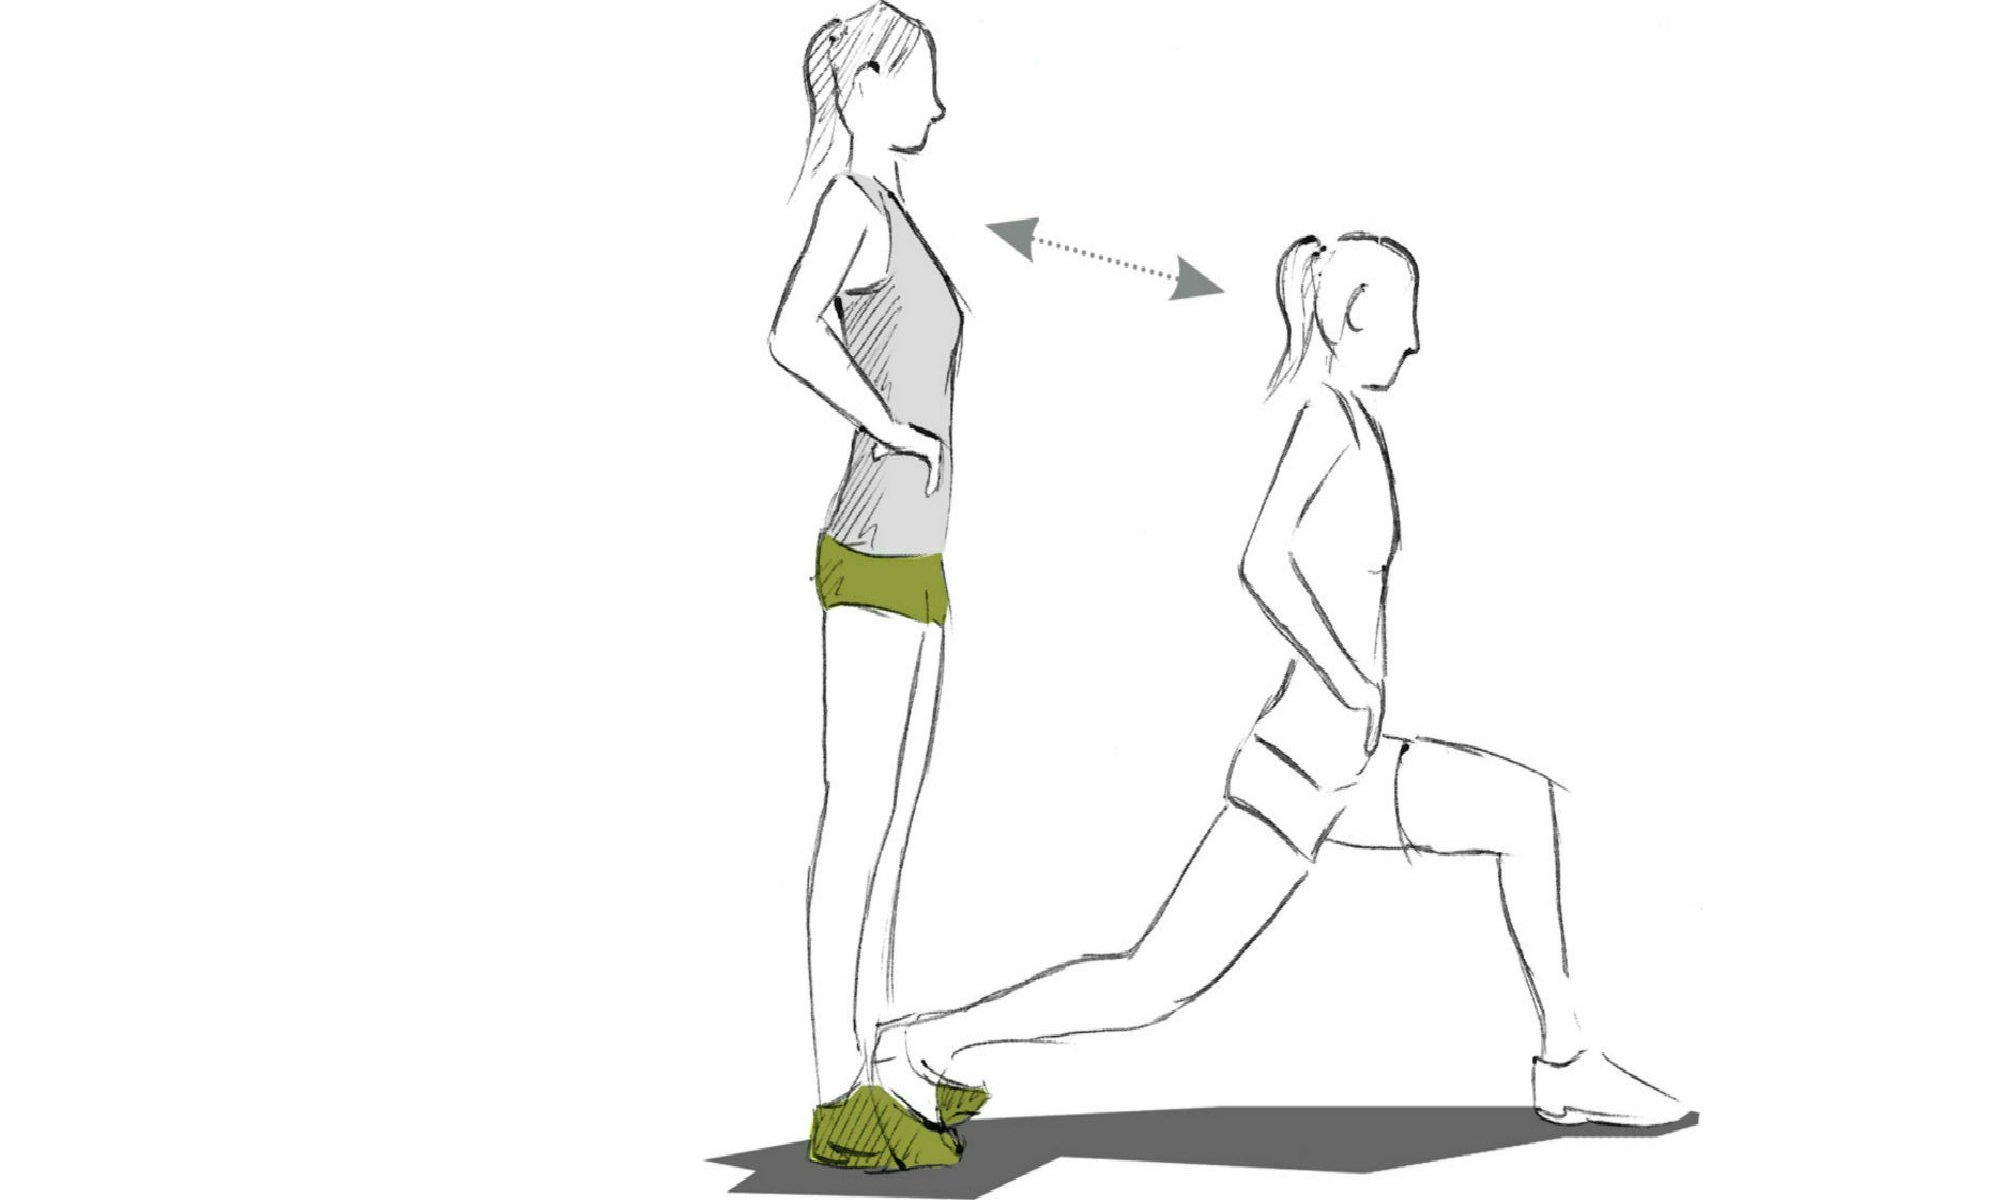 The single leg knee bend exercise.